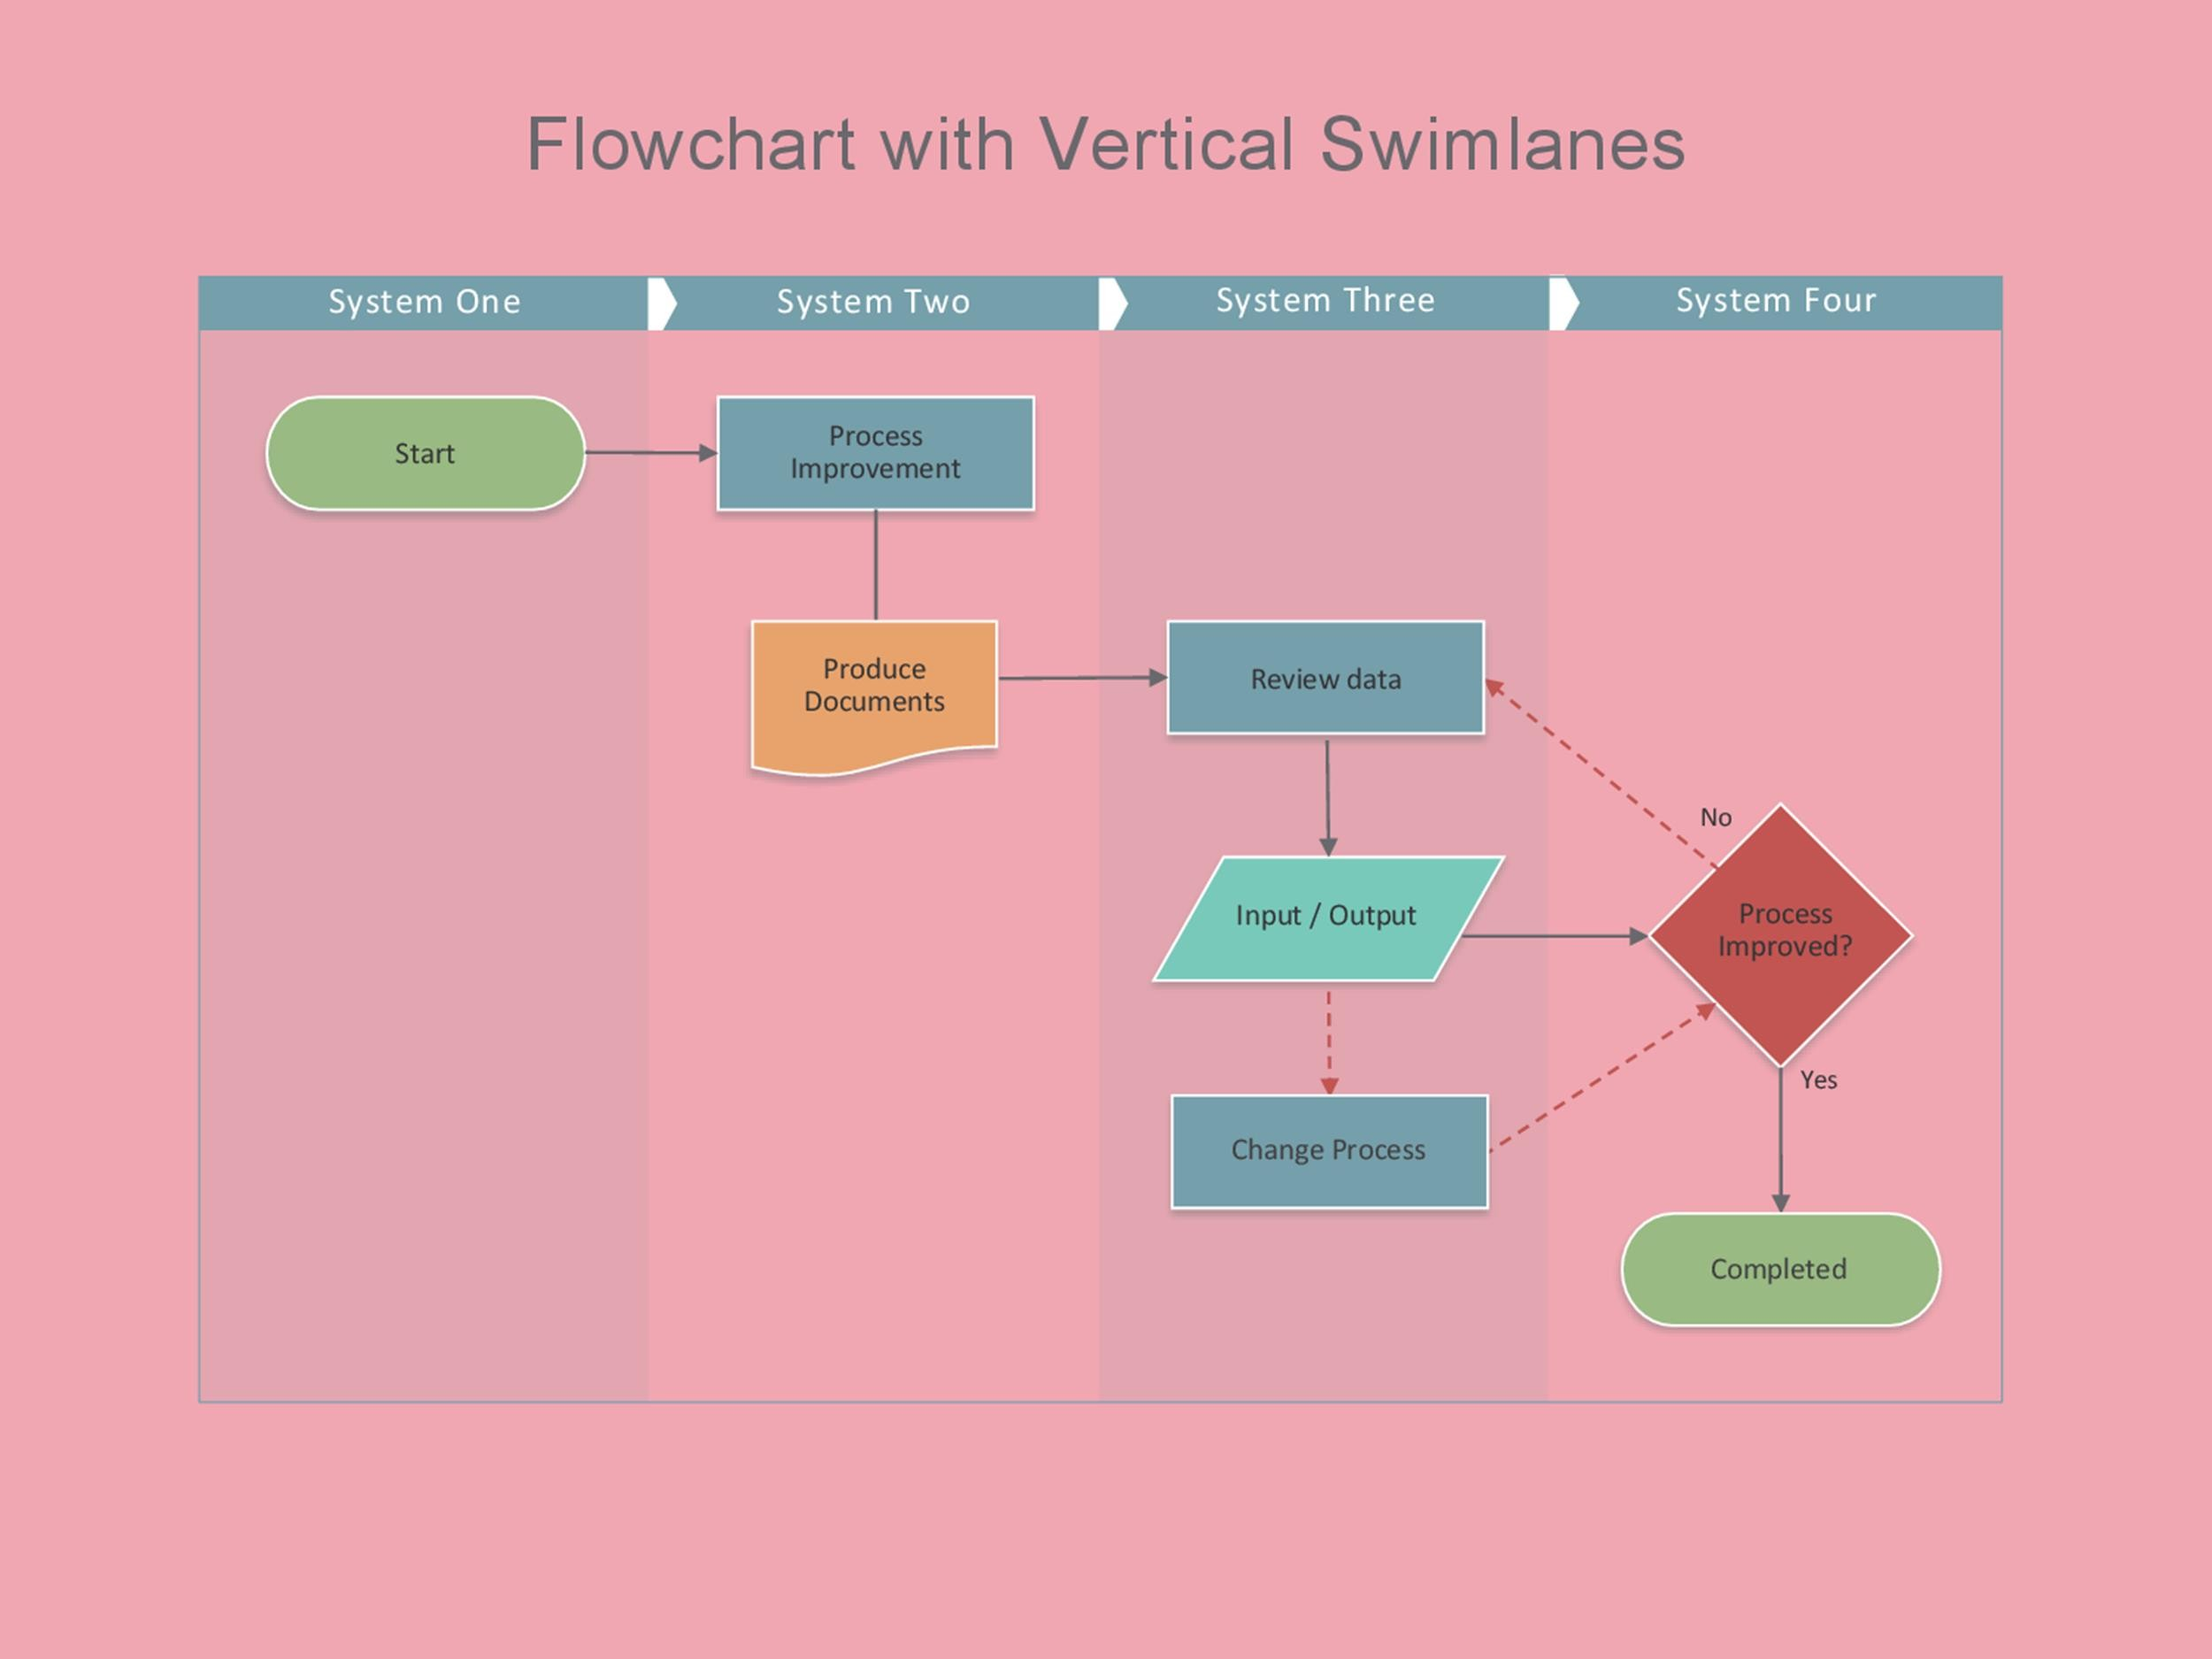 40 Fantastic Flow Chart Templates Word, Excel, Power Point - flow chart word